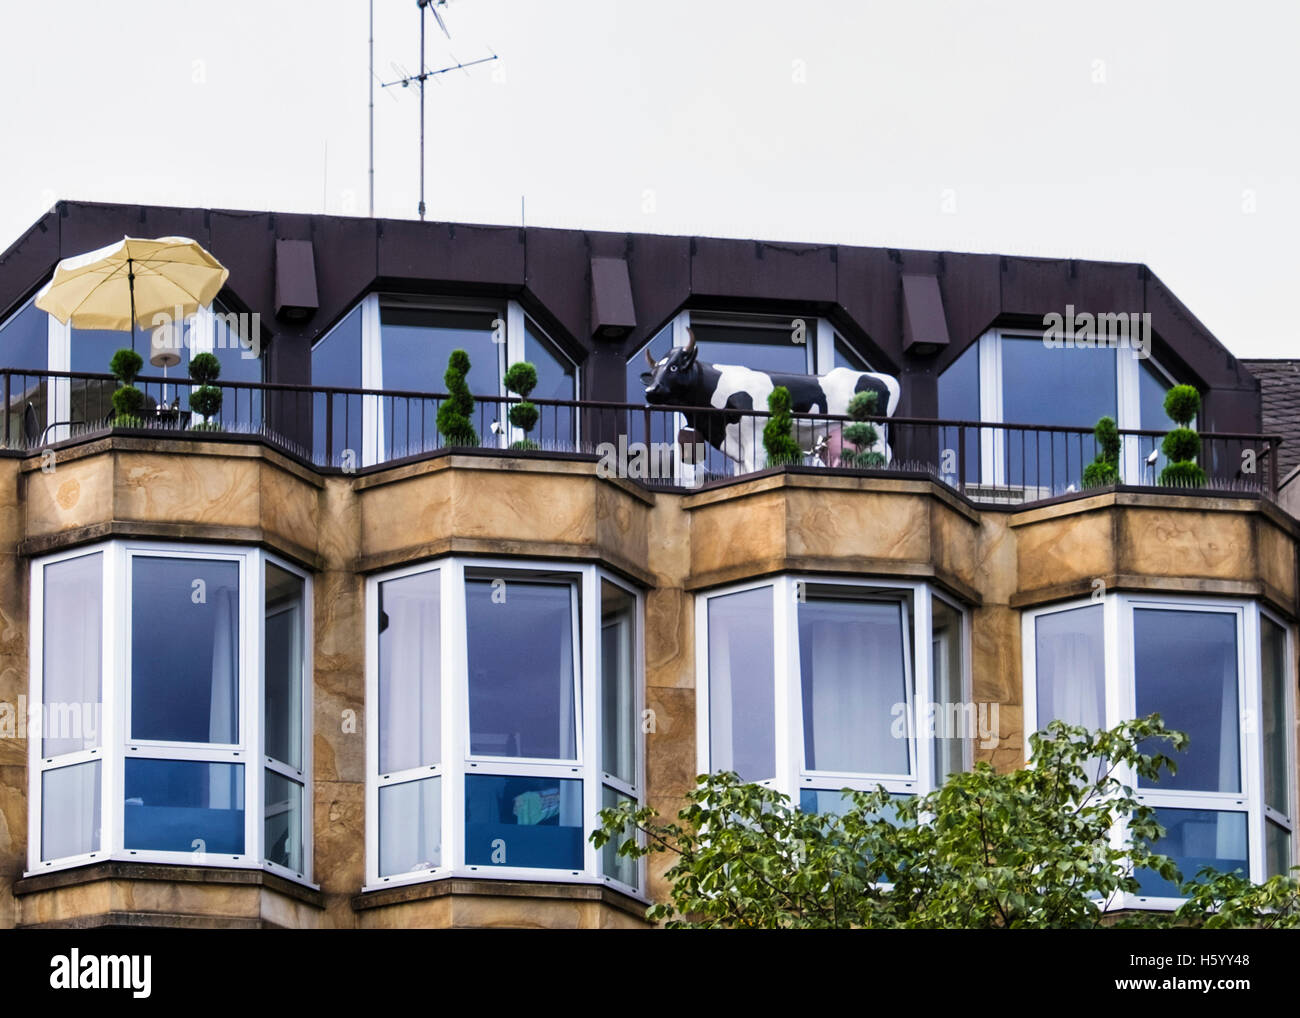 cow-on-an-apartment-balcony-quirky-amusi